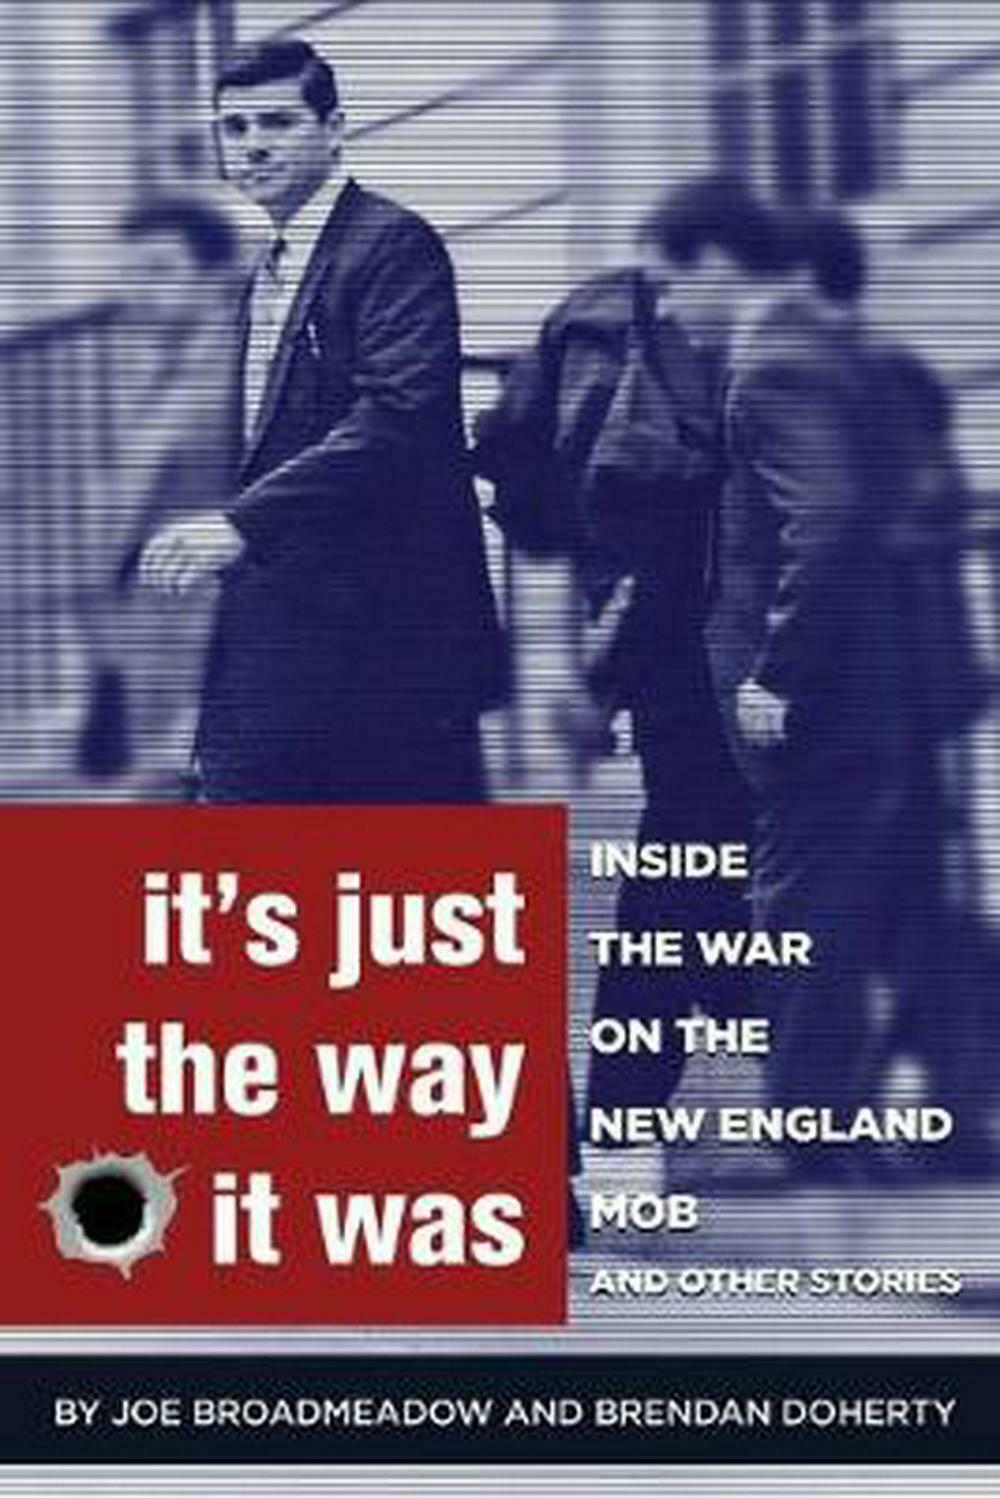 It's Just the Way It Was: Inside the War on the New England Mob and other storie